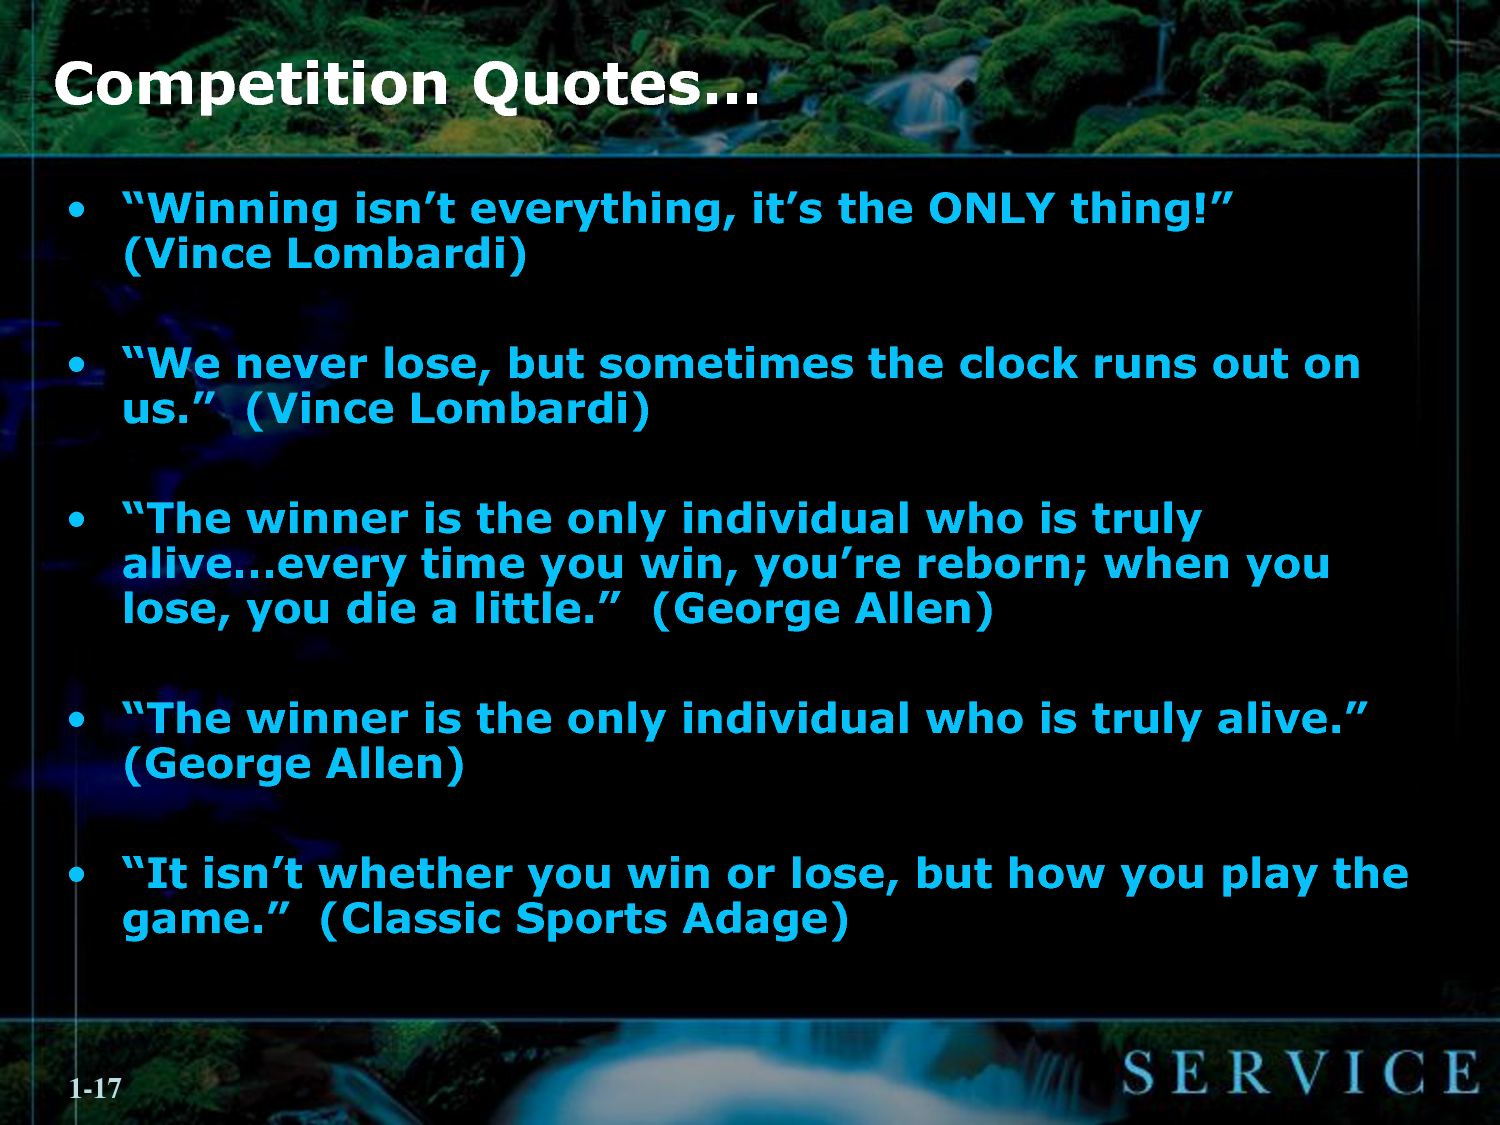 Competition quote #1